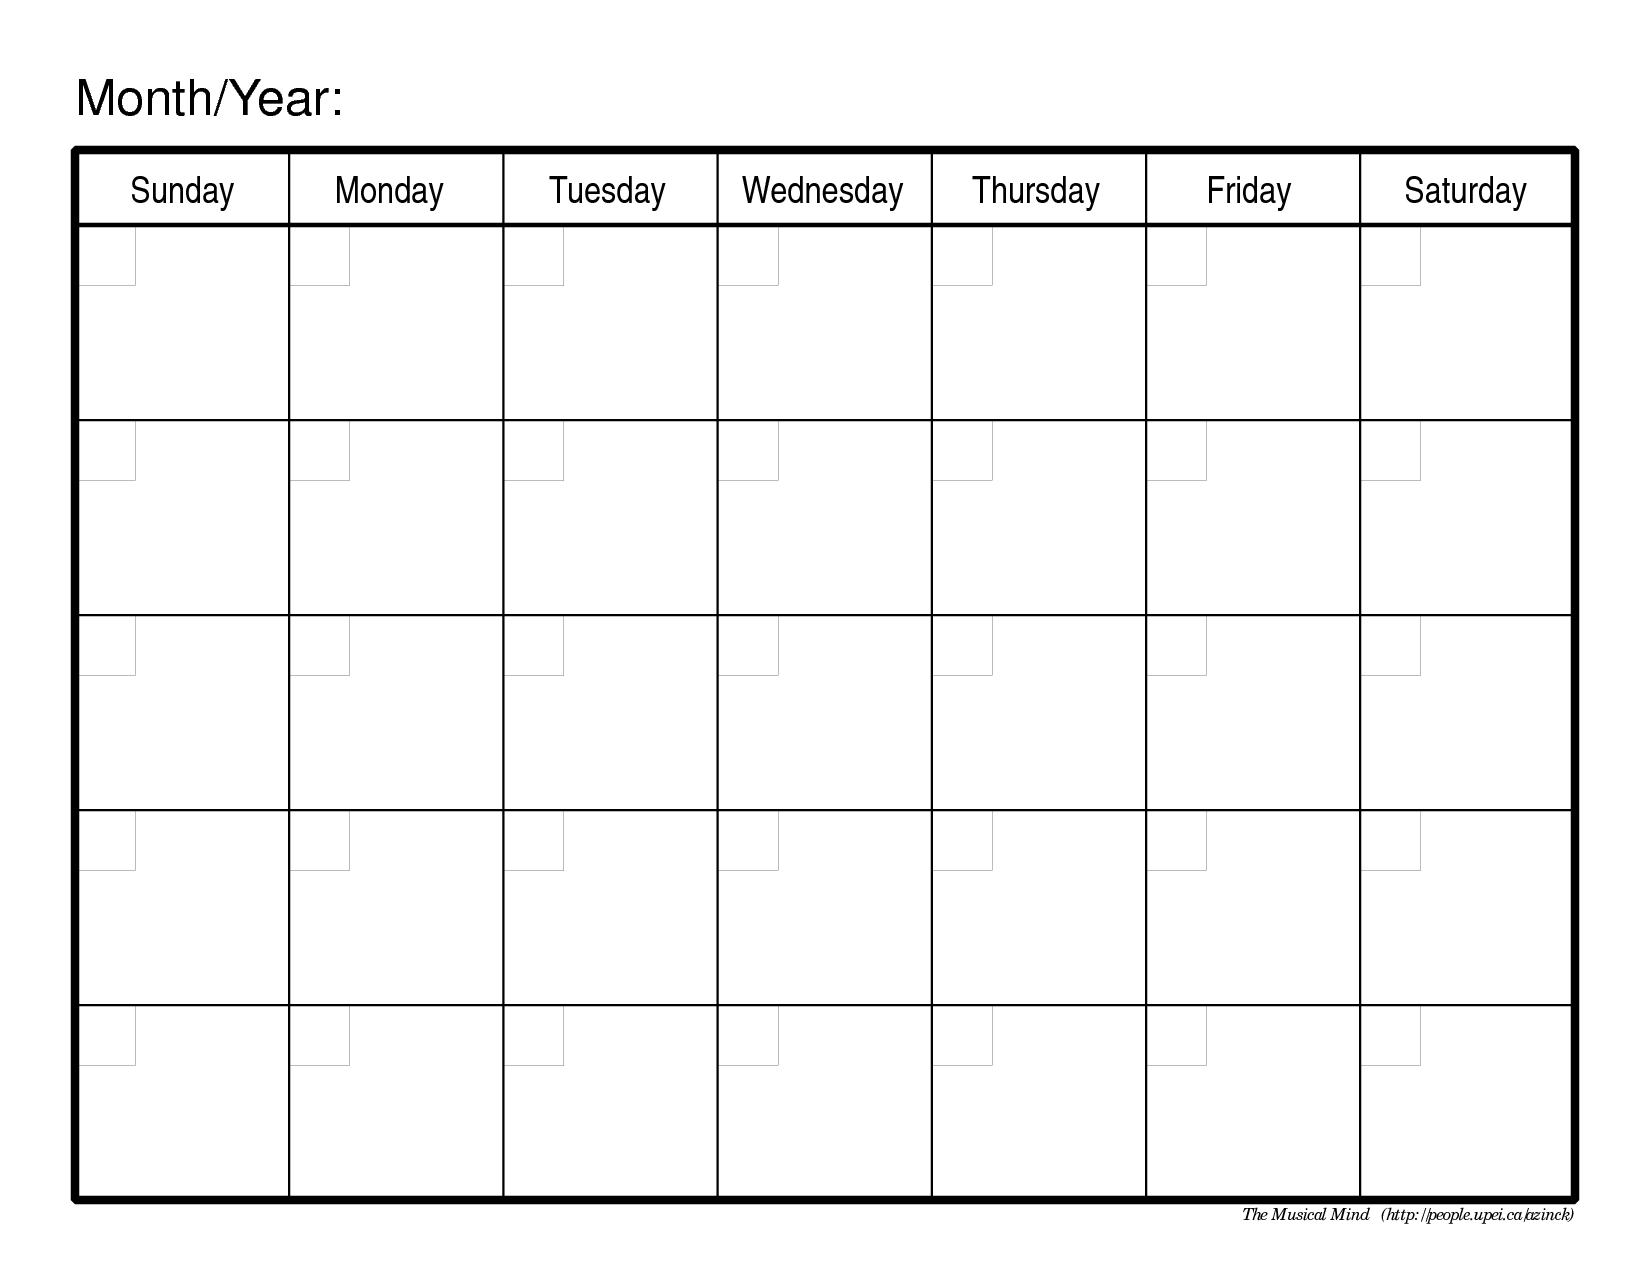 Monthly Calendar Template   Organizing   Printable Calendar Pages for Free Printable Blank Calendars To Fill In